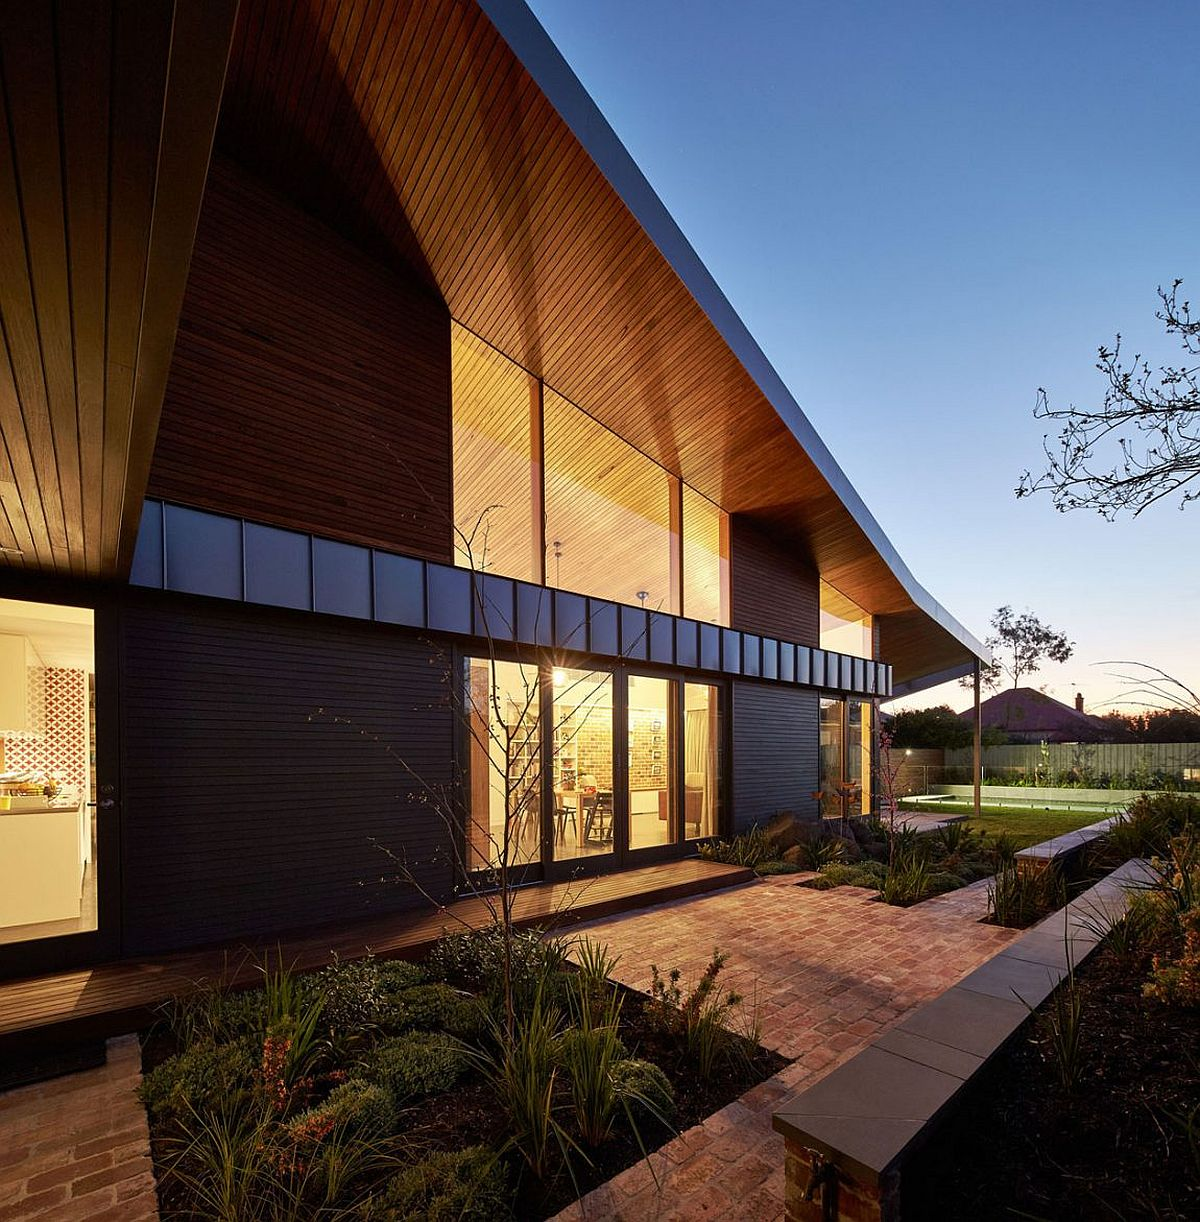 Garden becomes an essential part of the home design at modern Melbourne home